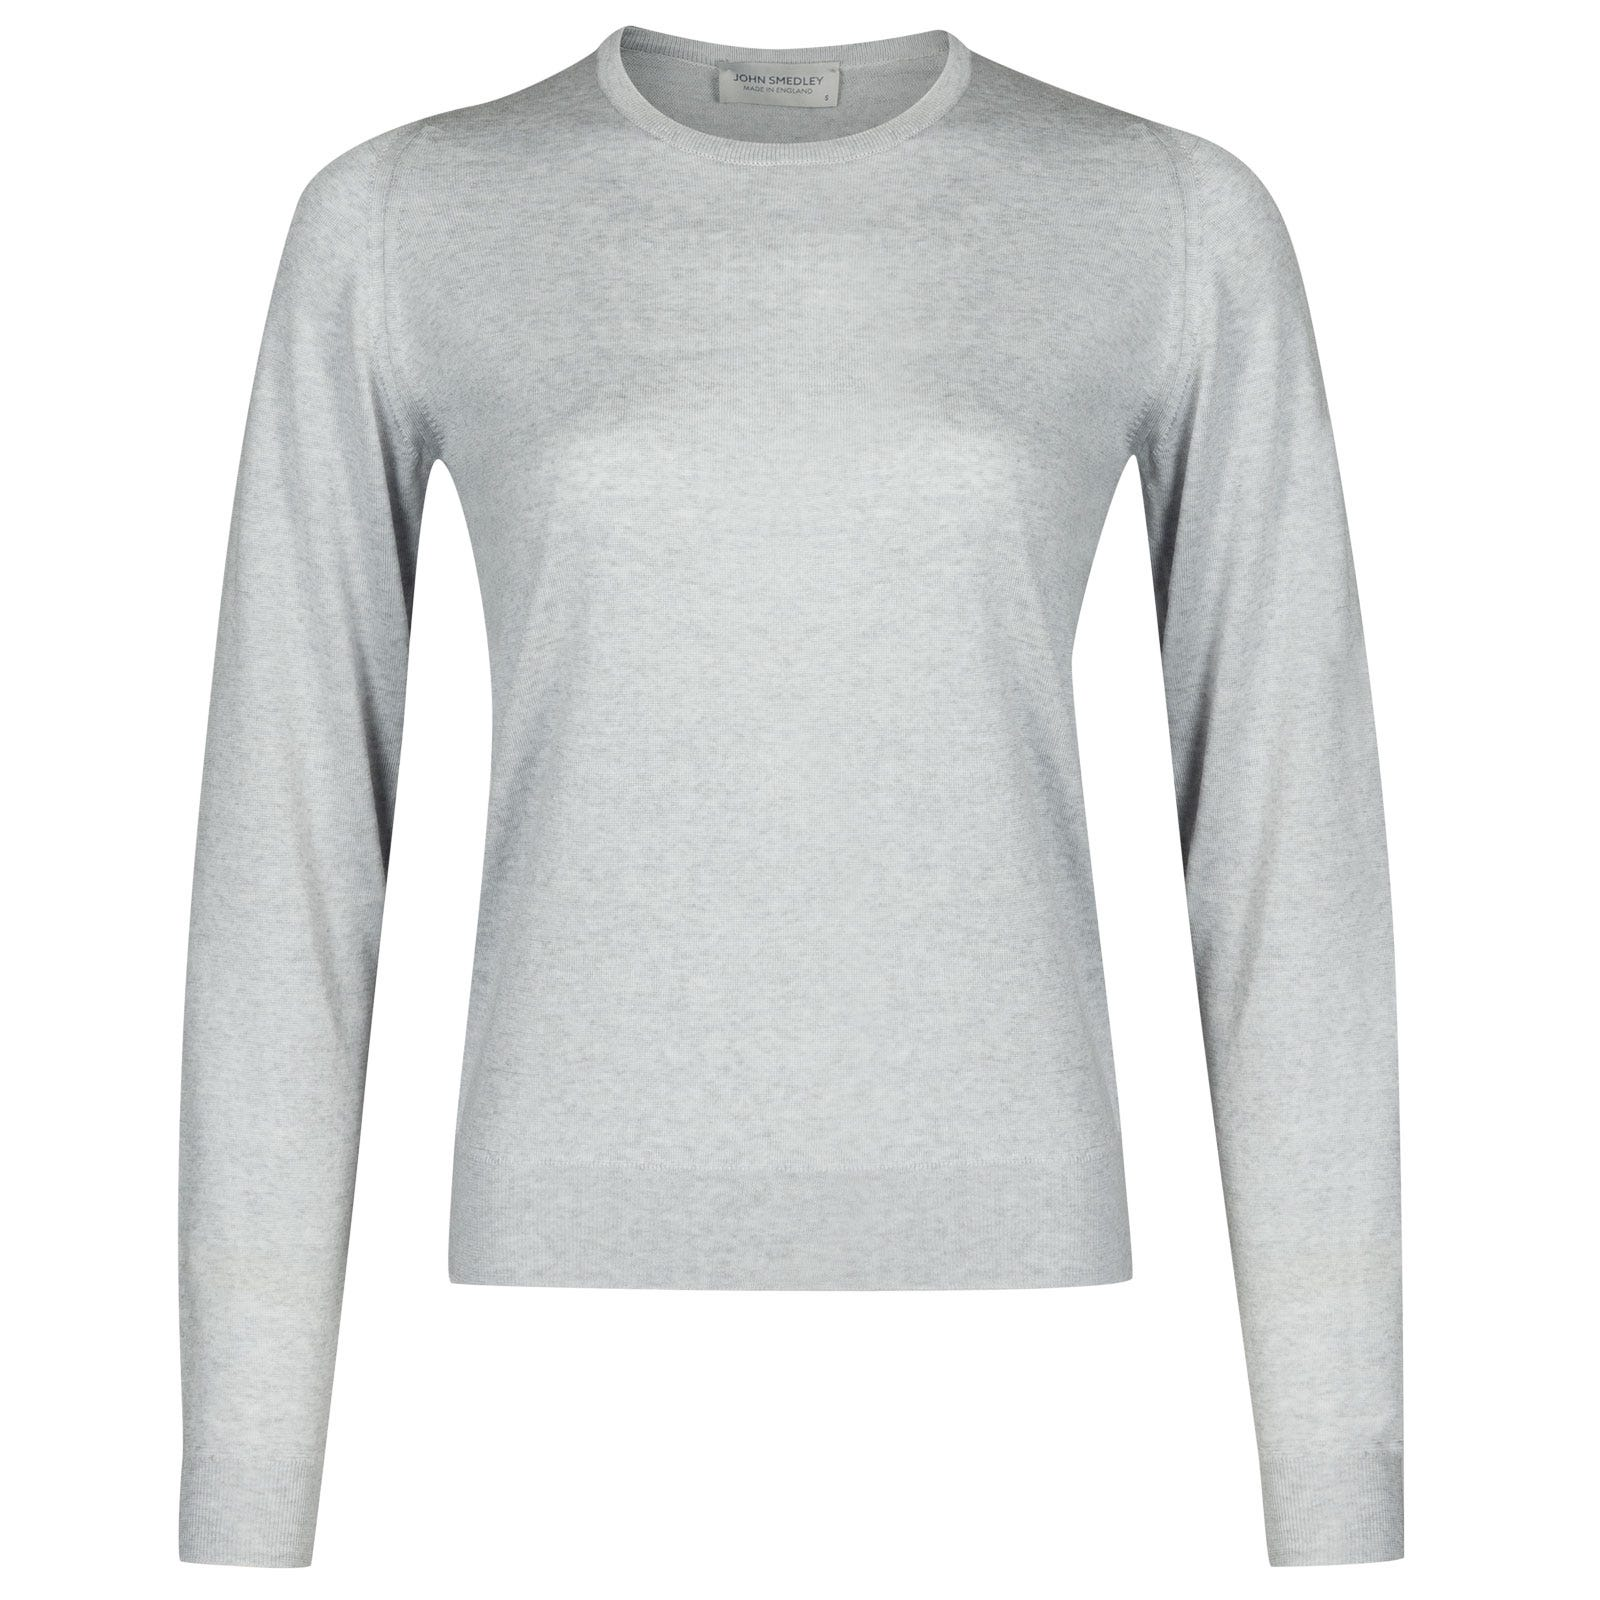 John Smedley venice Merino Wool Sweater in Bardot Grey-S